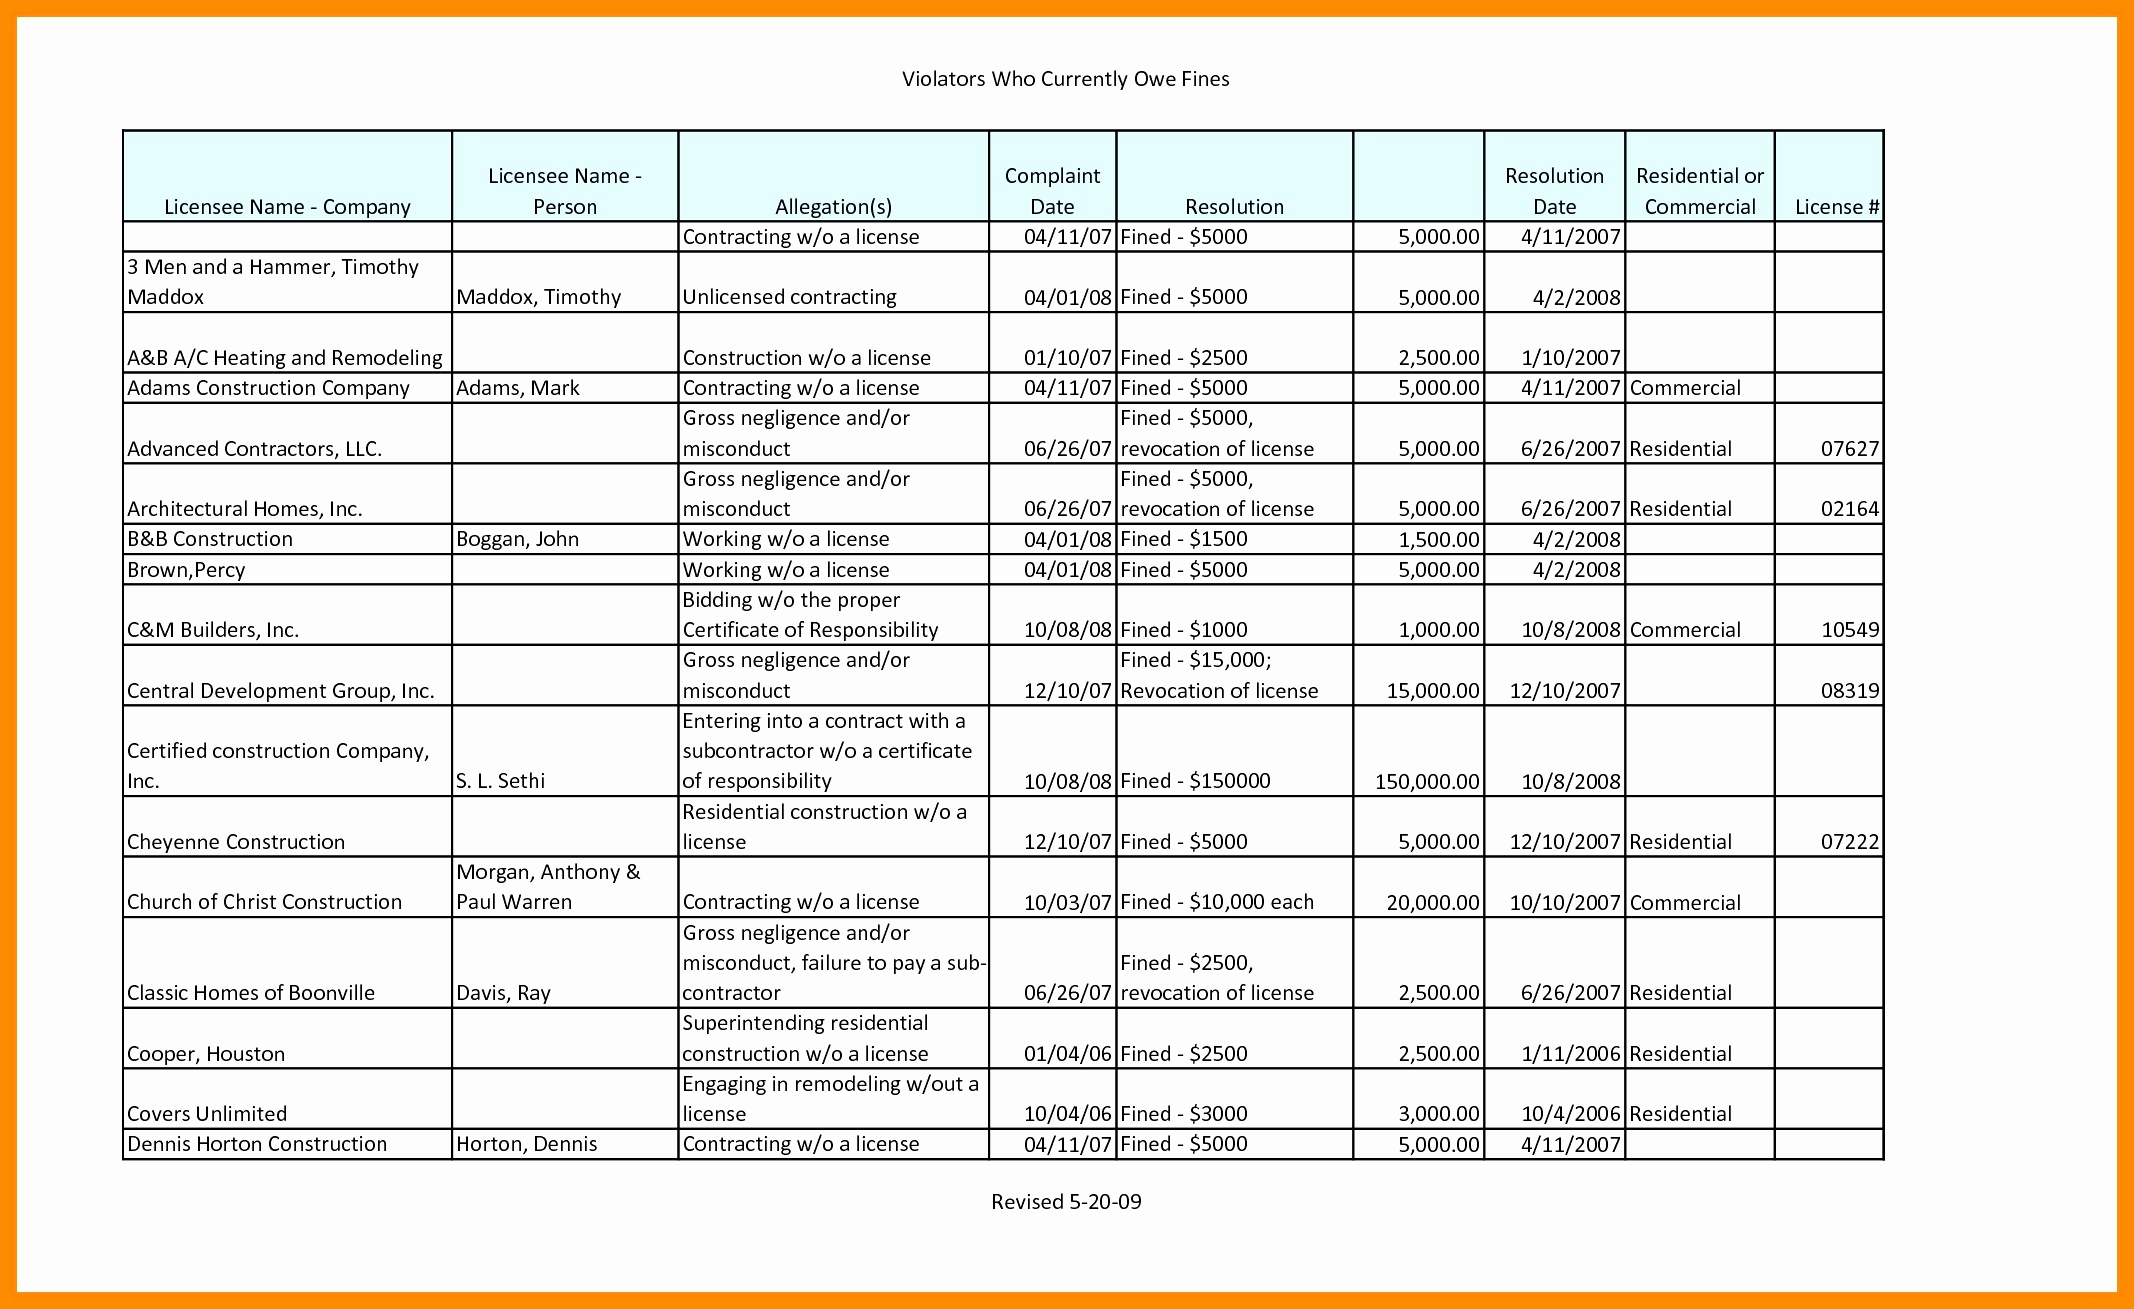 50 New Commercial Construction Cost Estimate Spreadsheet - Document For Commercial Construction Cost Estimate Spreadsheet